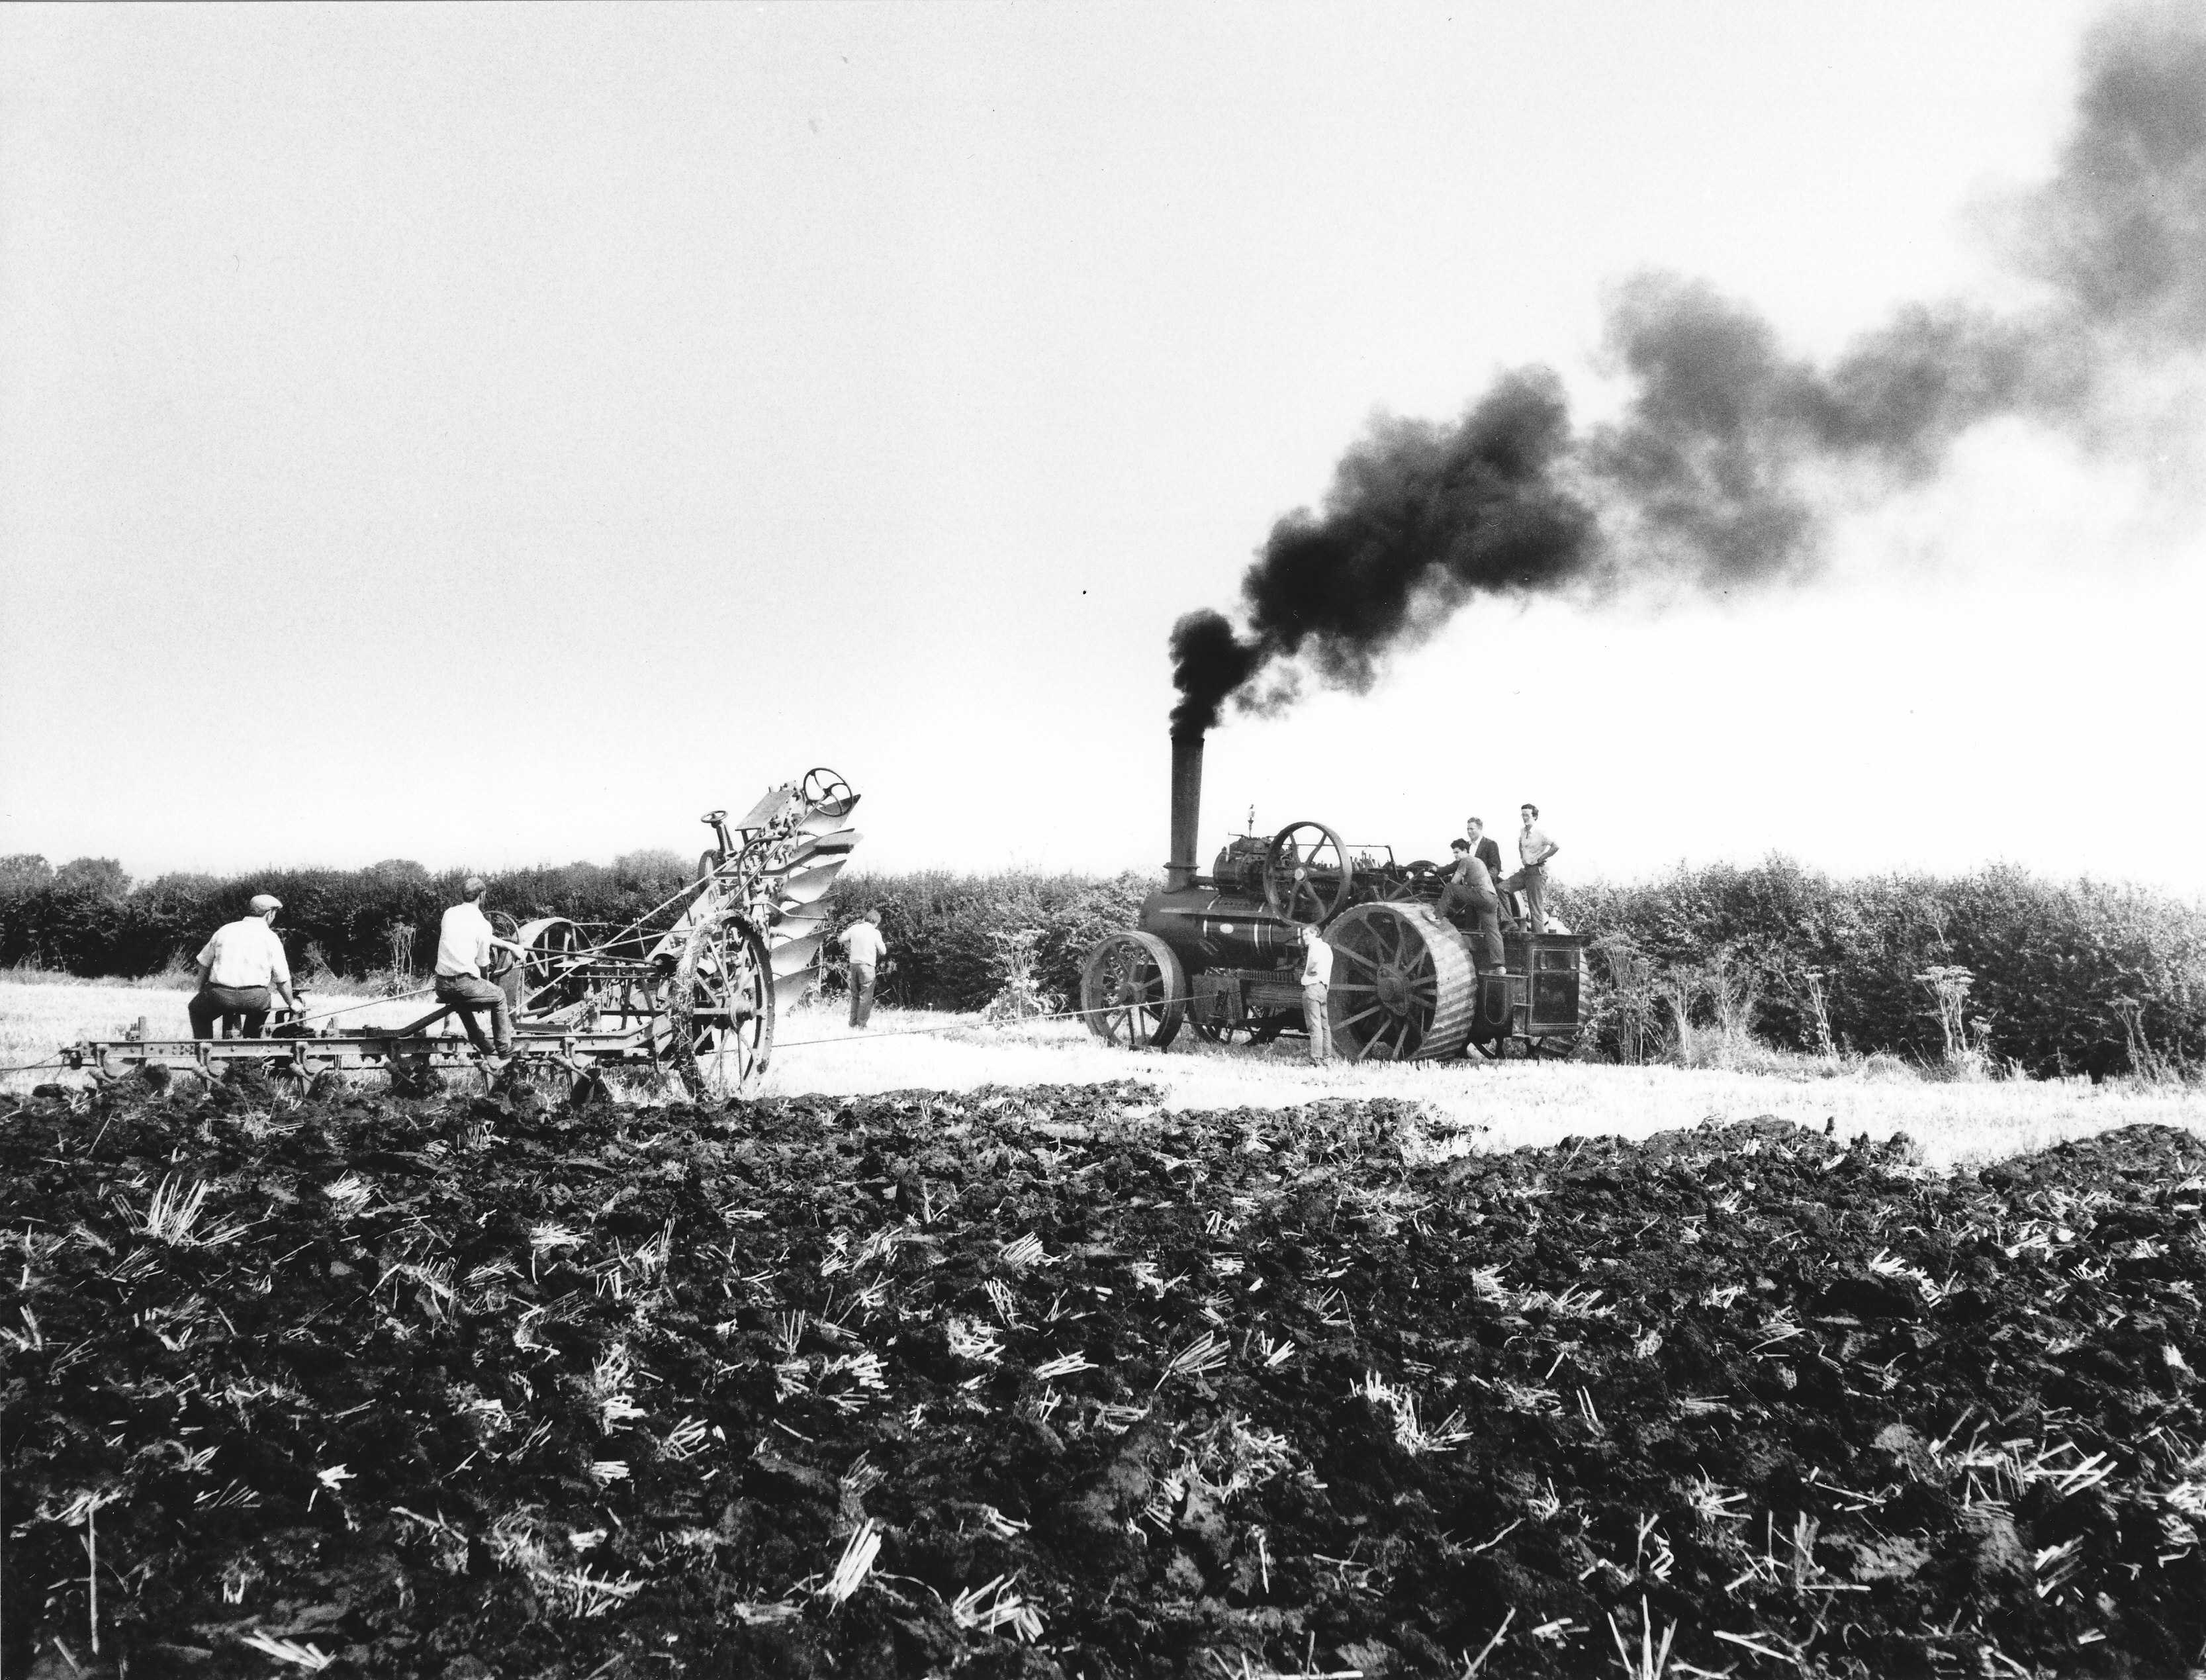 A black and white photo of a plough being pulled across a field by a rope attached to a traction engine. Black smoke can be seen coming from the engine's chimney. Two men ride the plough, while four more stand on the engine.